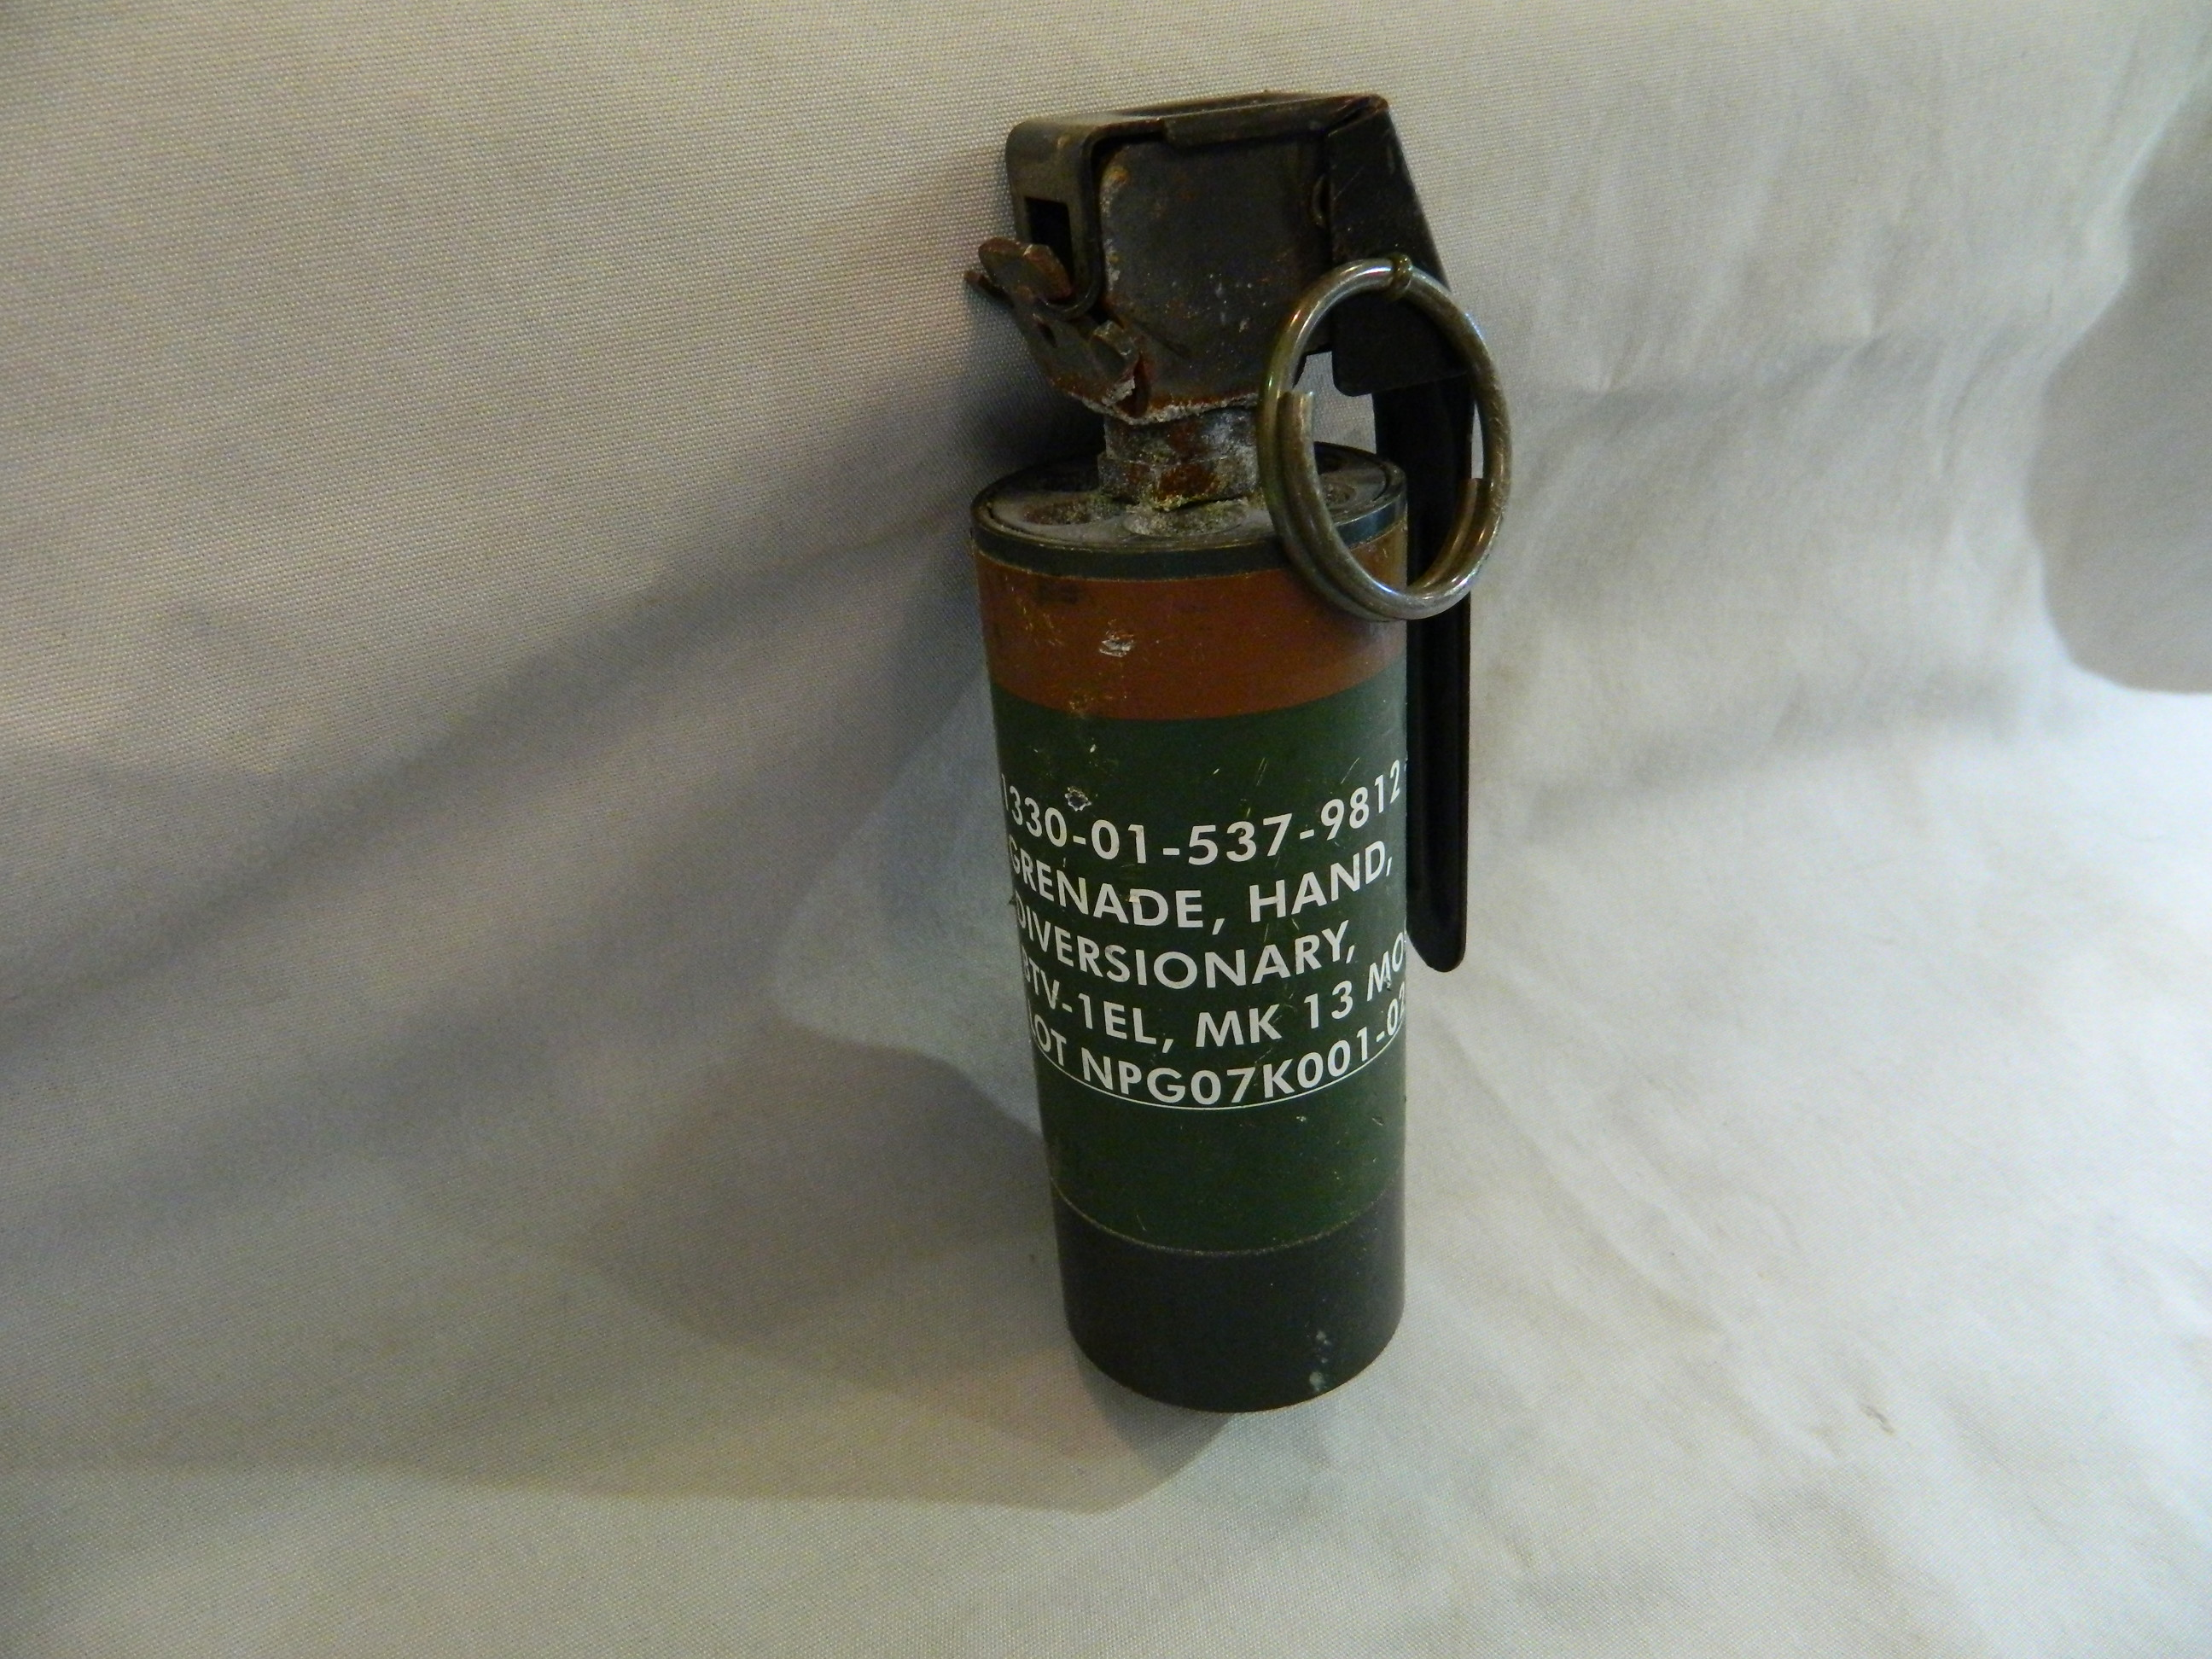 MK 13 MOD 0 Diversionary Hand Grenade (Flash Bang)